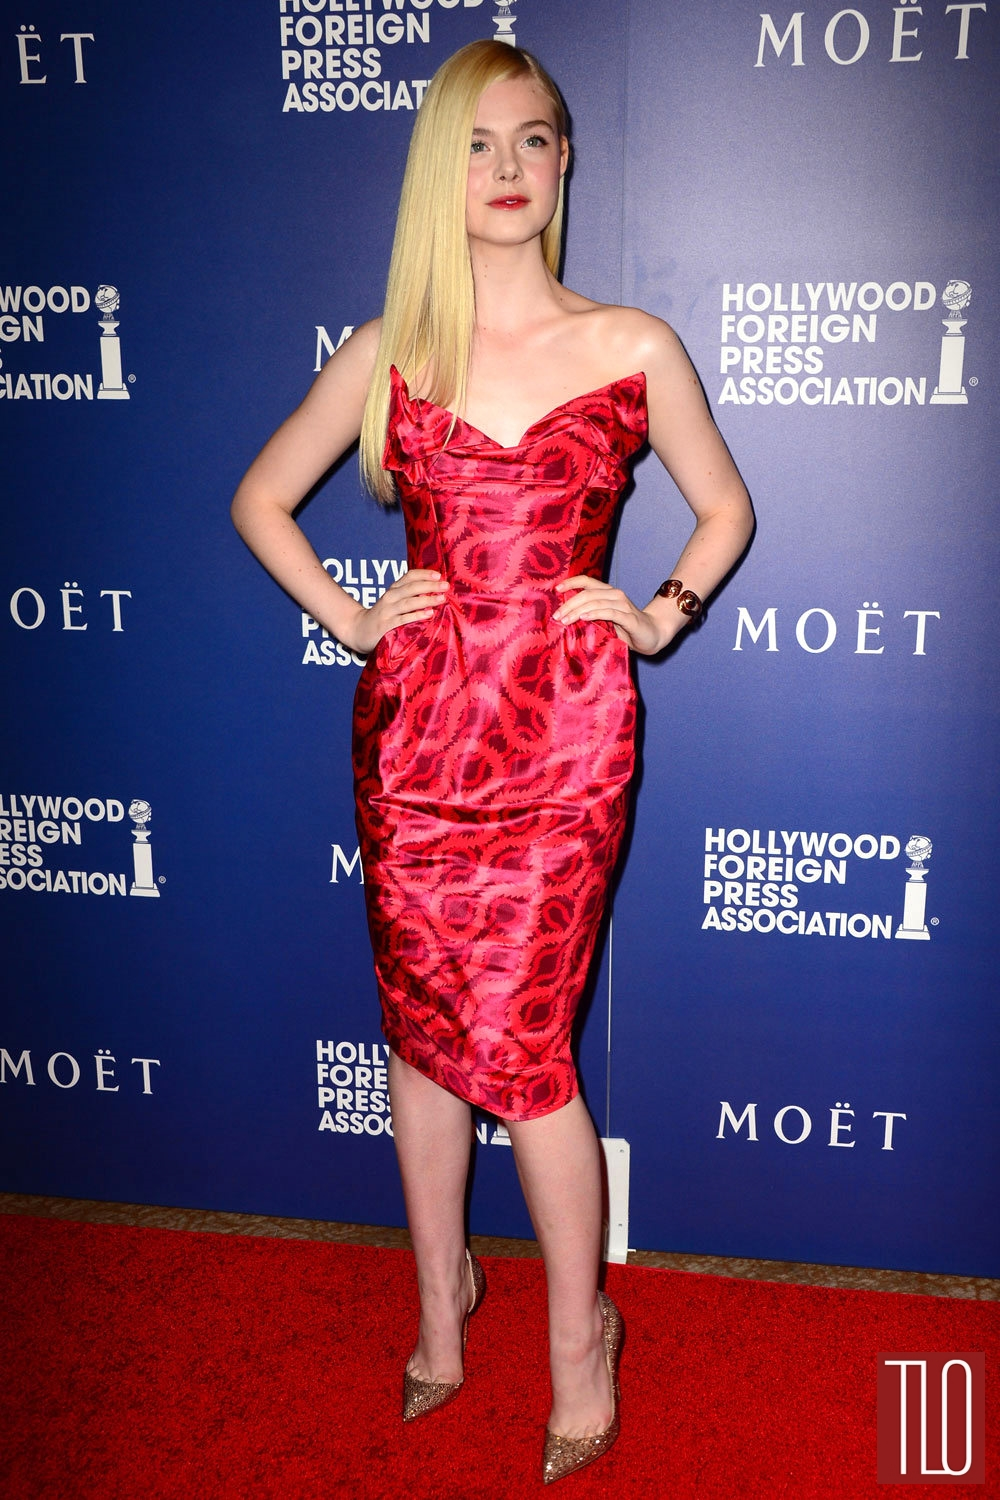 Elle-Fanning-Vivienne-Westwood-HFPA-Grants-Banquet-Red-Carpet-Tom-Lorenzo-Site-TLO (1)